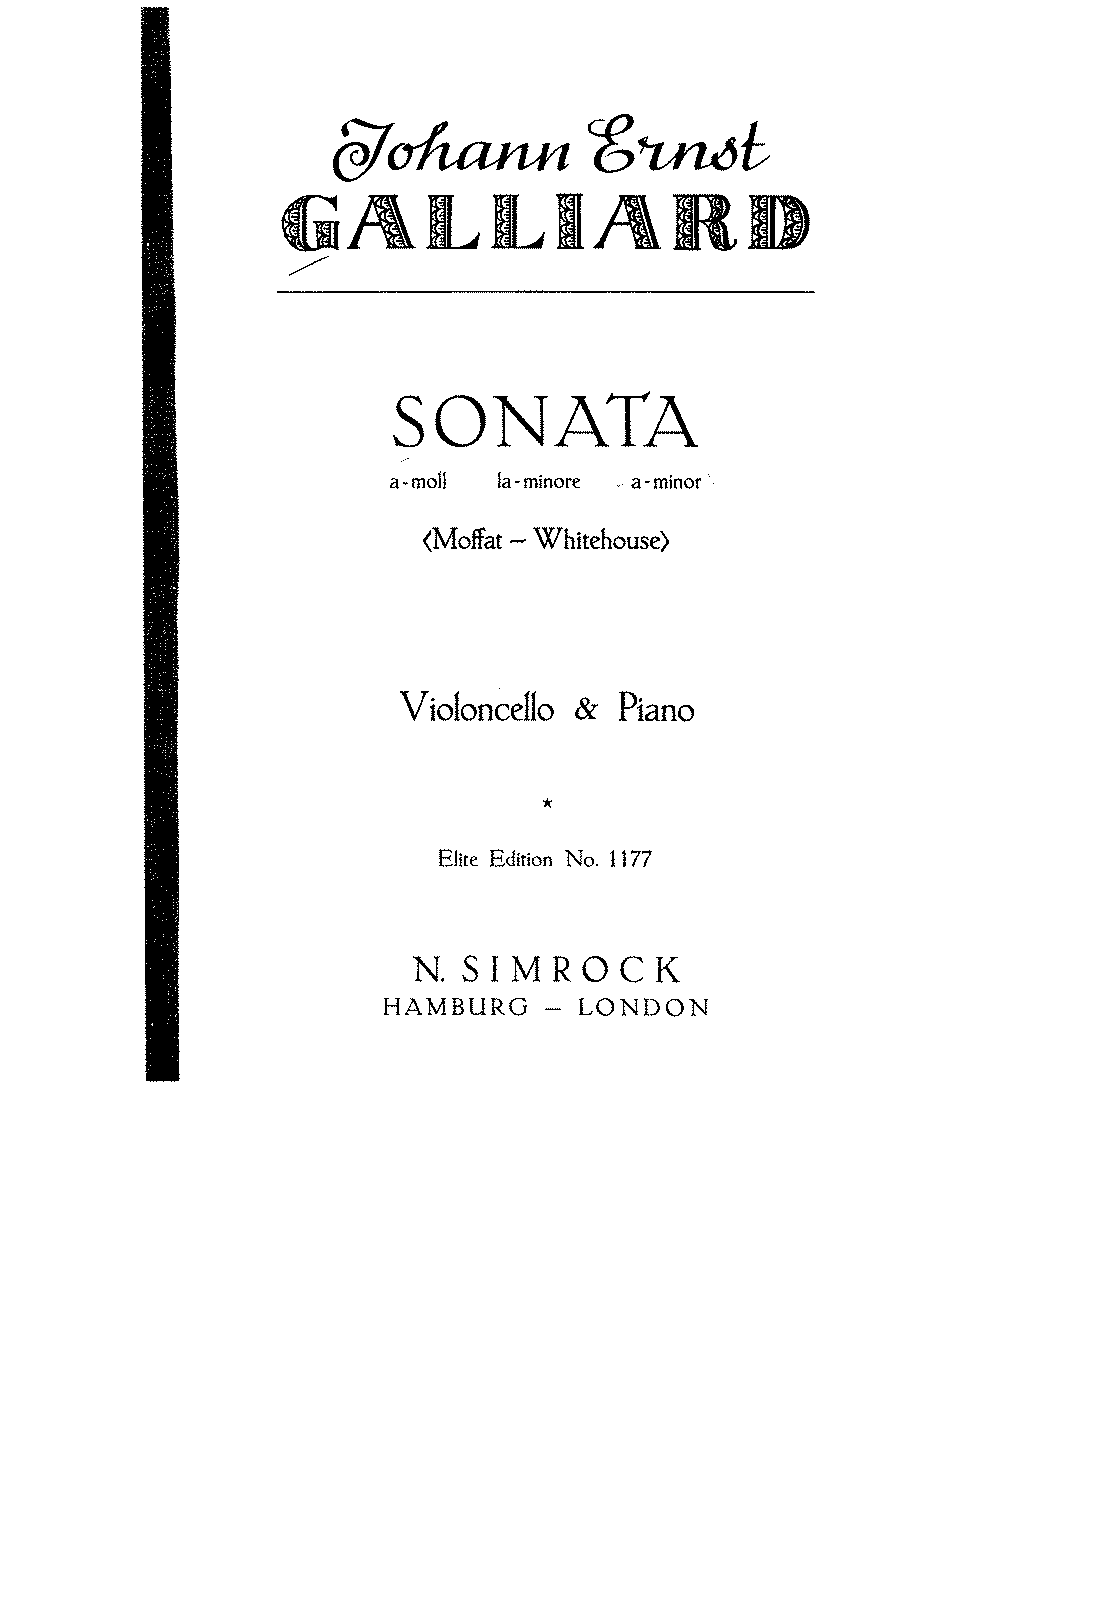 PMLP79372-Galliard - Sonata in A minor for Cello and Piano (c1730) (Moffat) score.pdf